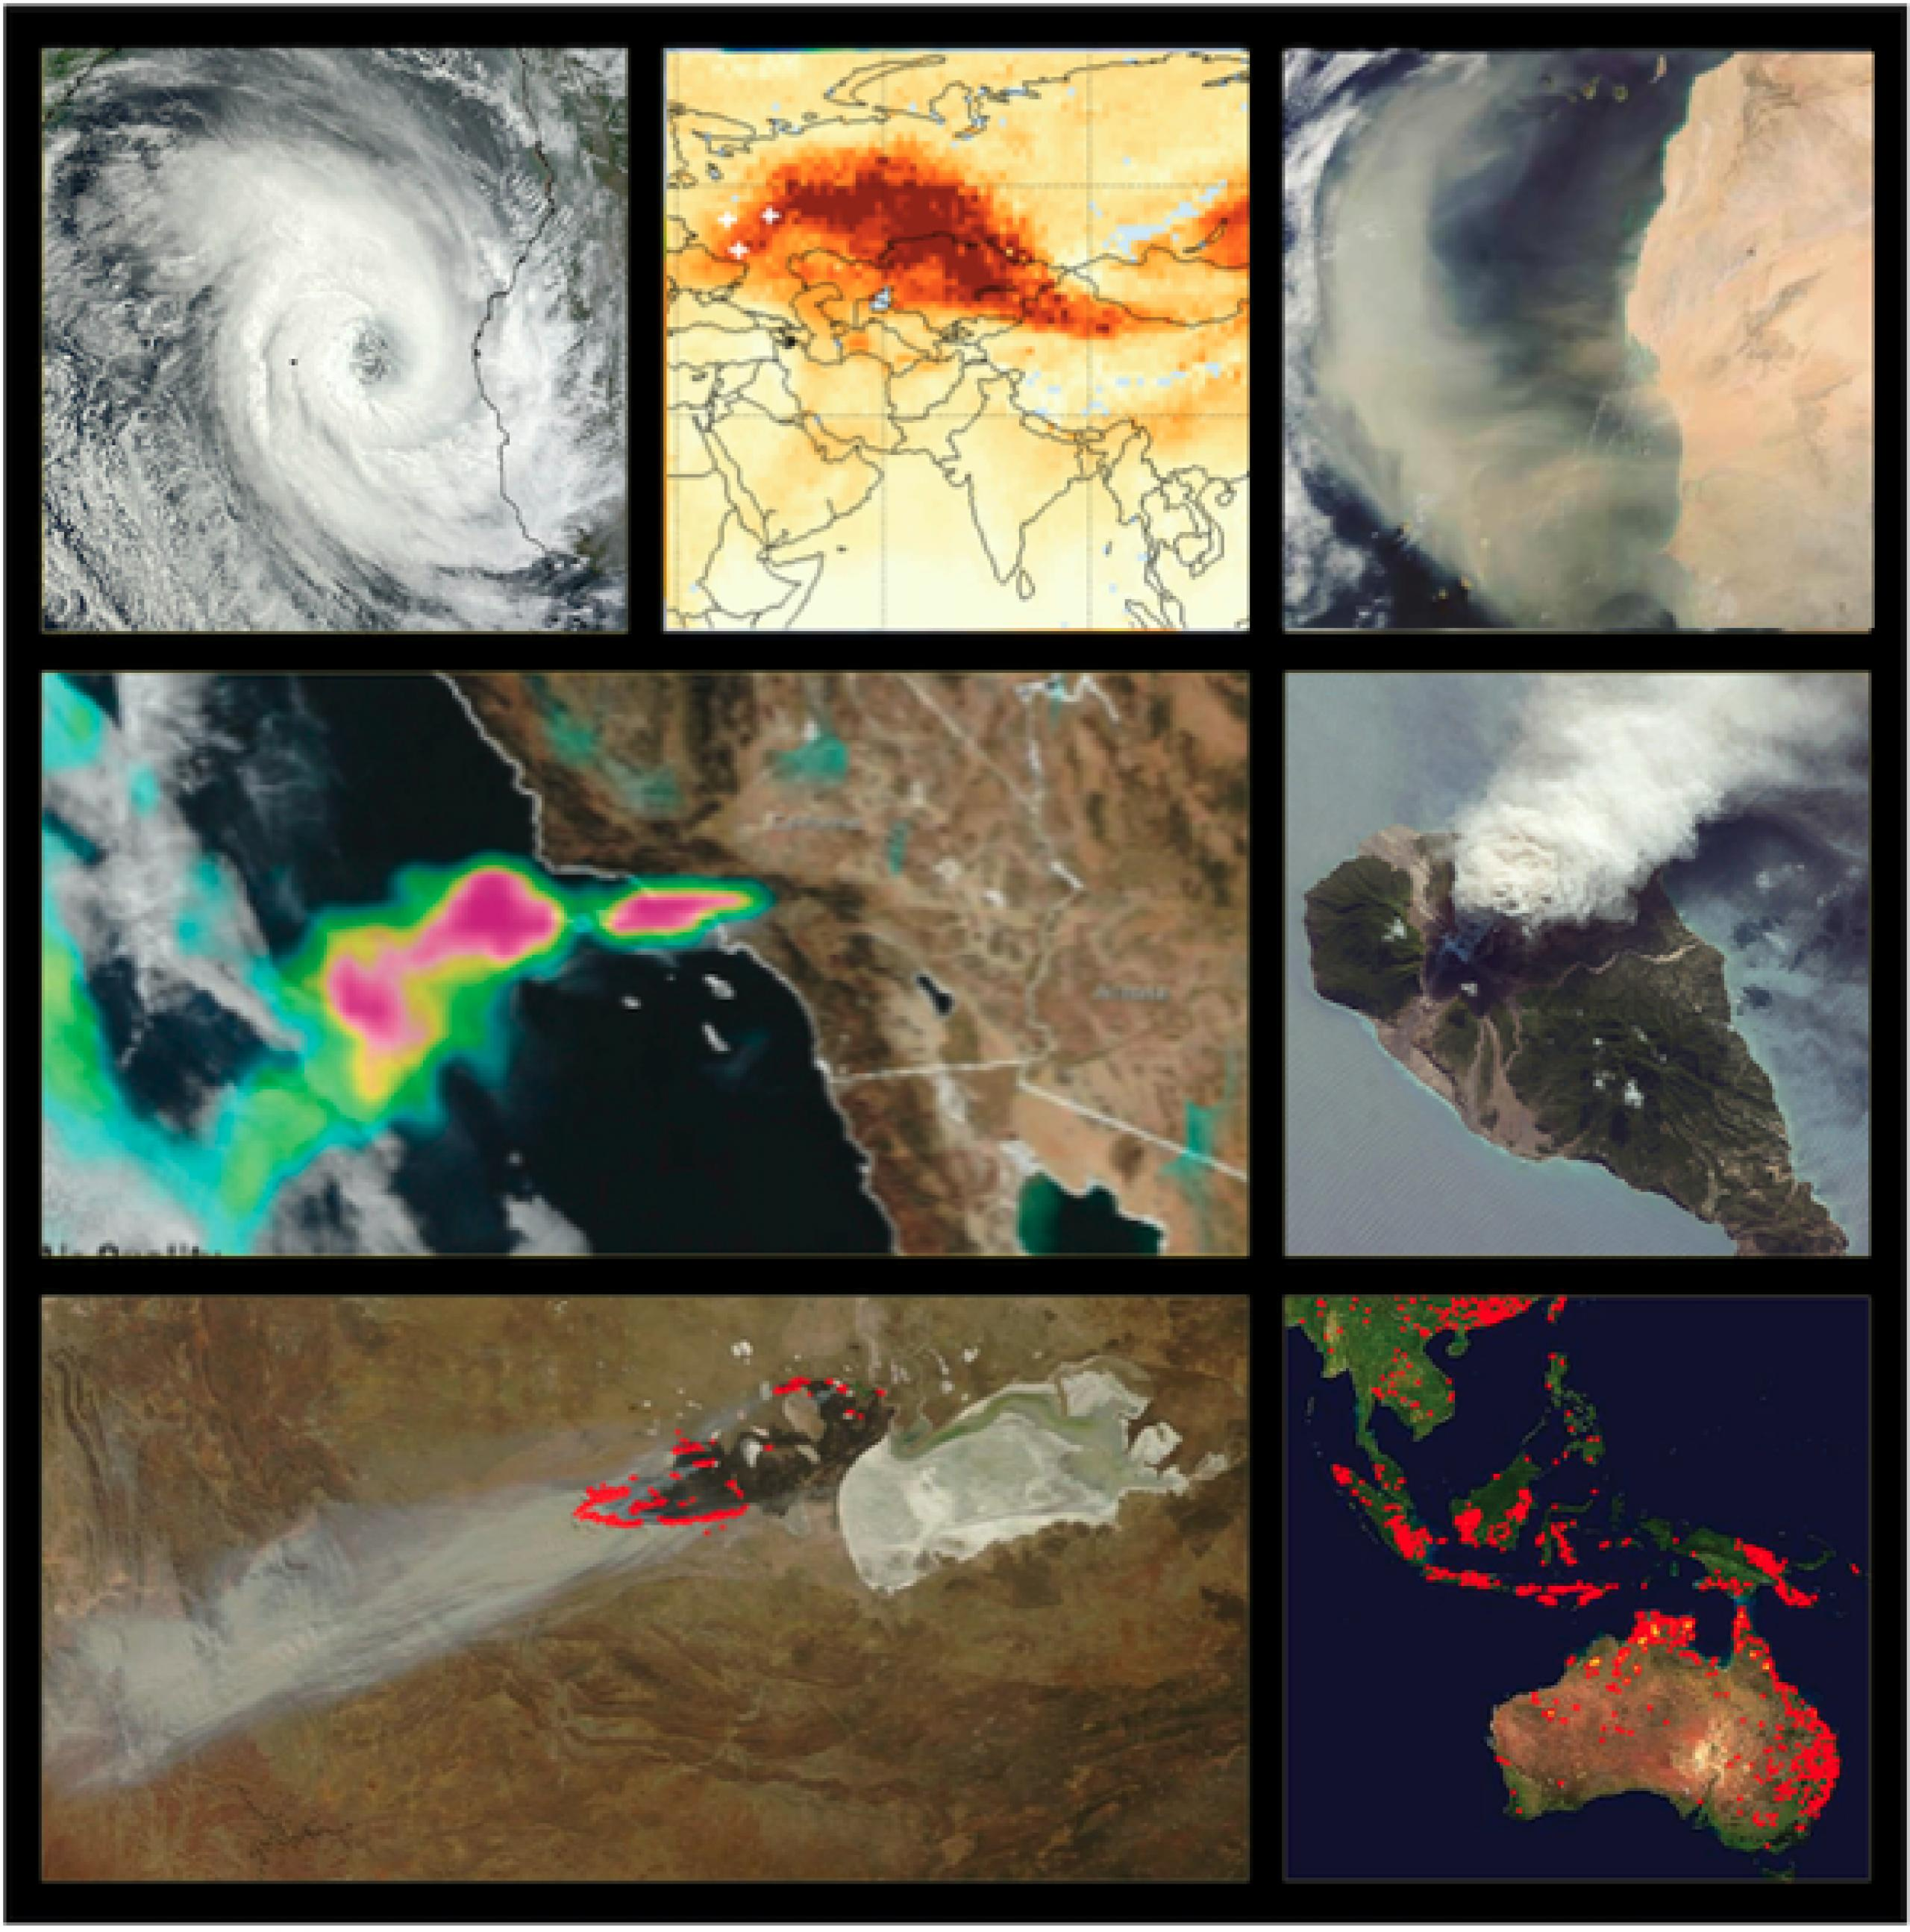 Collage of 7 earth data satellite images including a hurricane, smoke and fire imagery